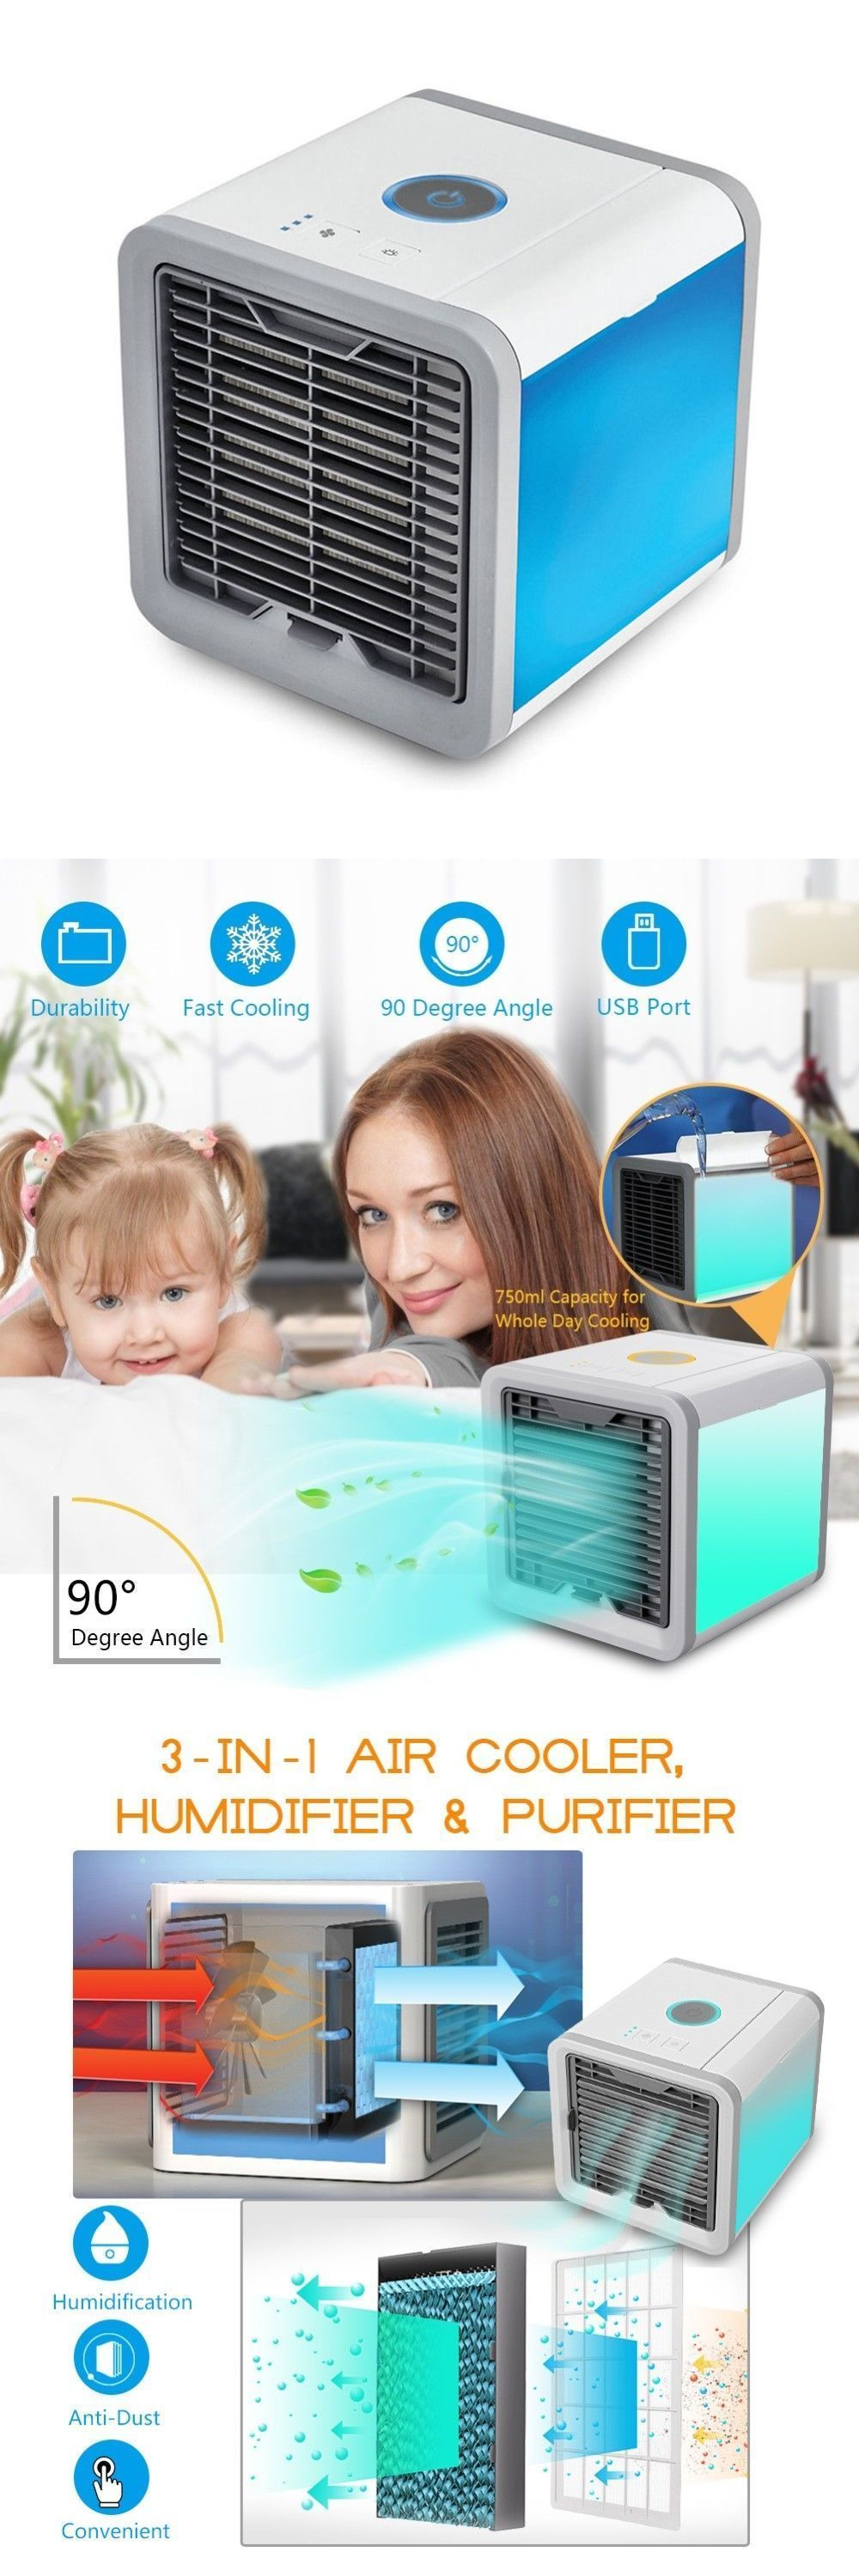 Portable Mini AC Air Conditioner Personal Unit Cooling Fan